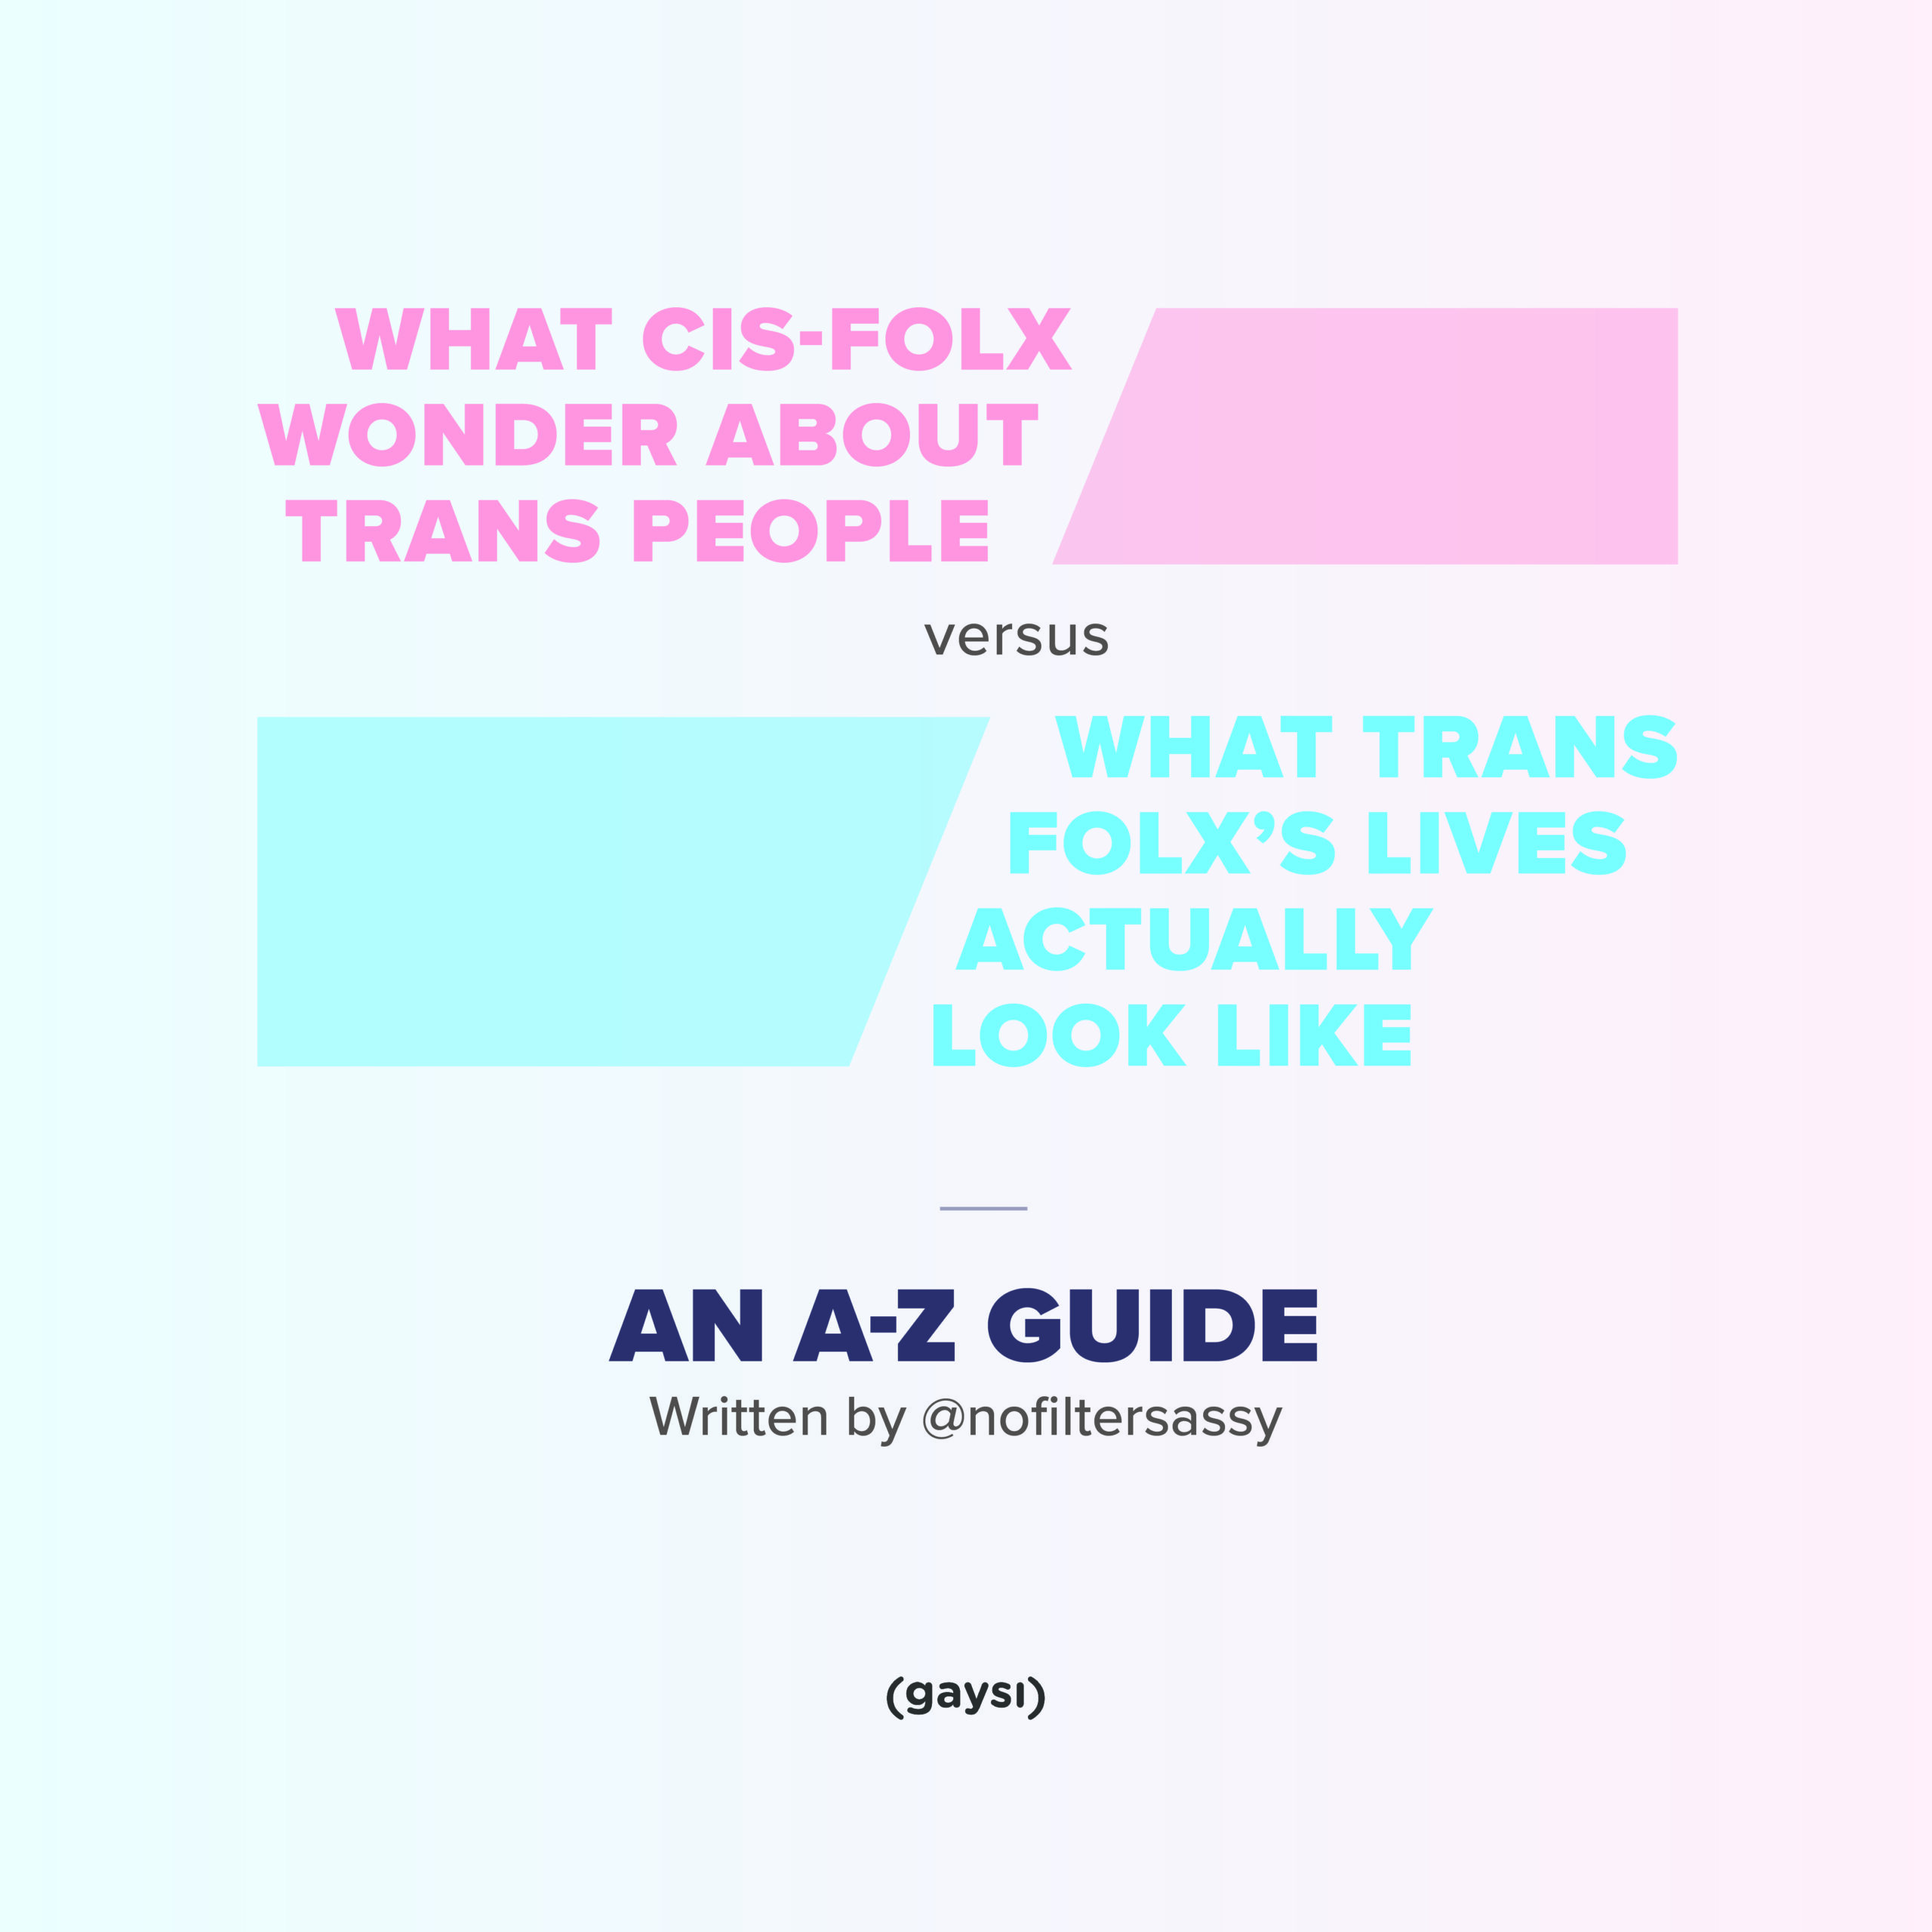 What Trans Folx's Lives Actually Looks Like VS What Cis-Folx Wonder About Trans People – An A-Z Guide